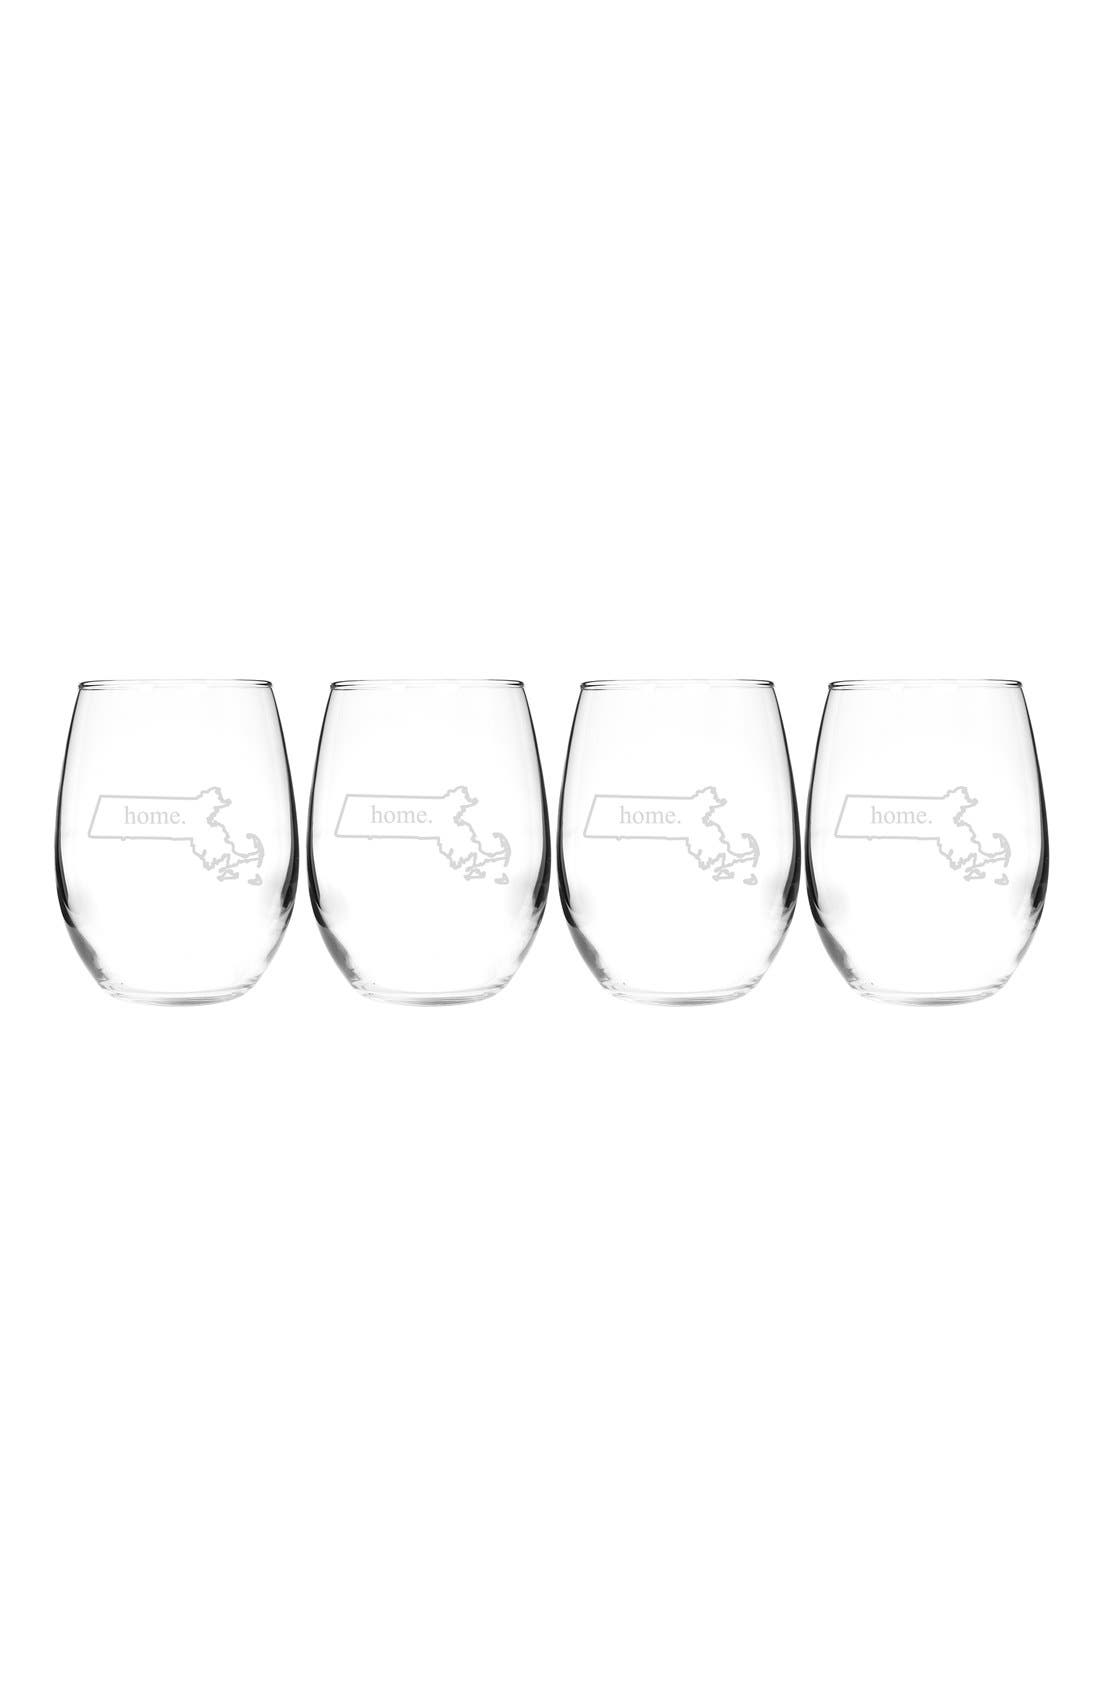 Home State Set of 4 Stemless Wine Glasses,                             Main thumbnail 20, color,